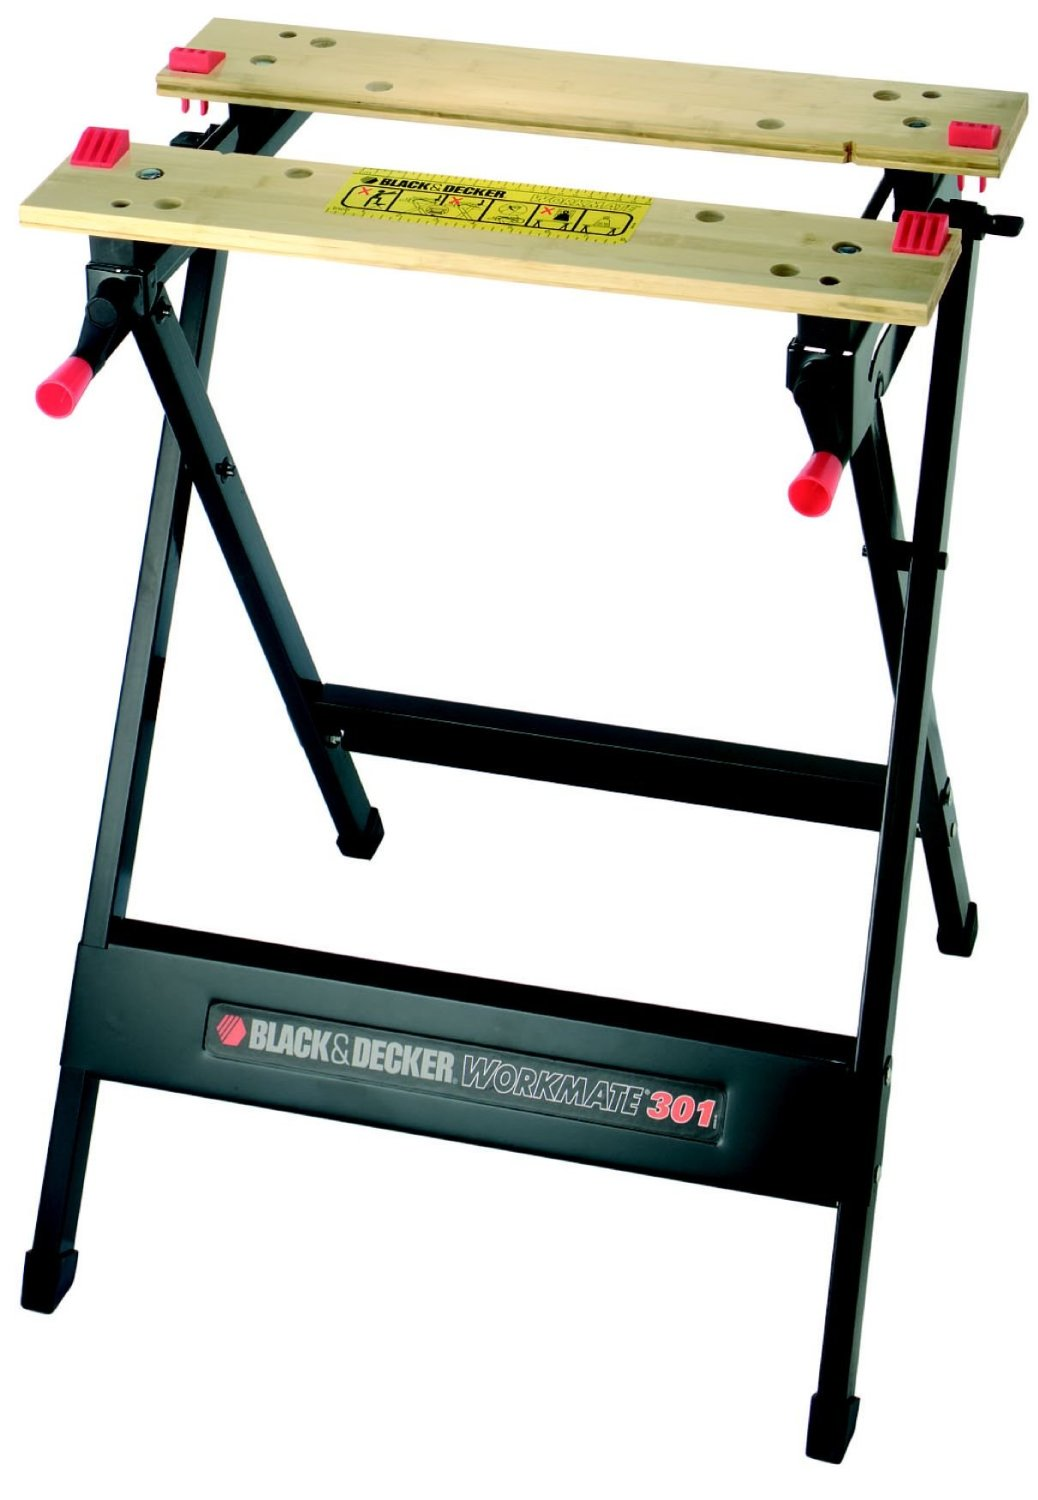 Black and Decker Workmate WM301 Review